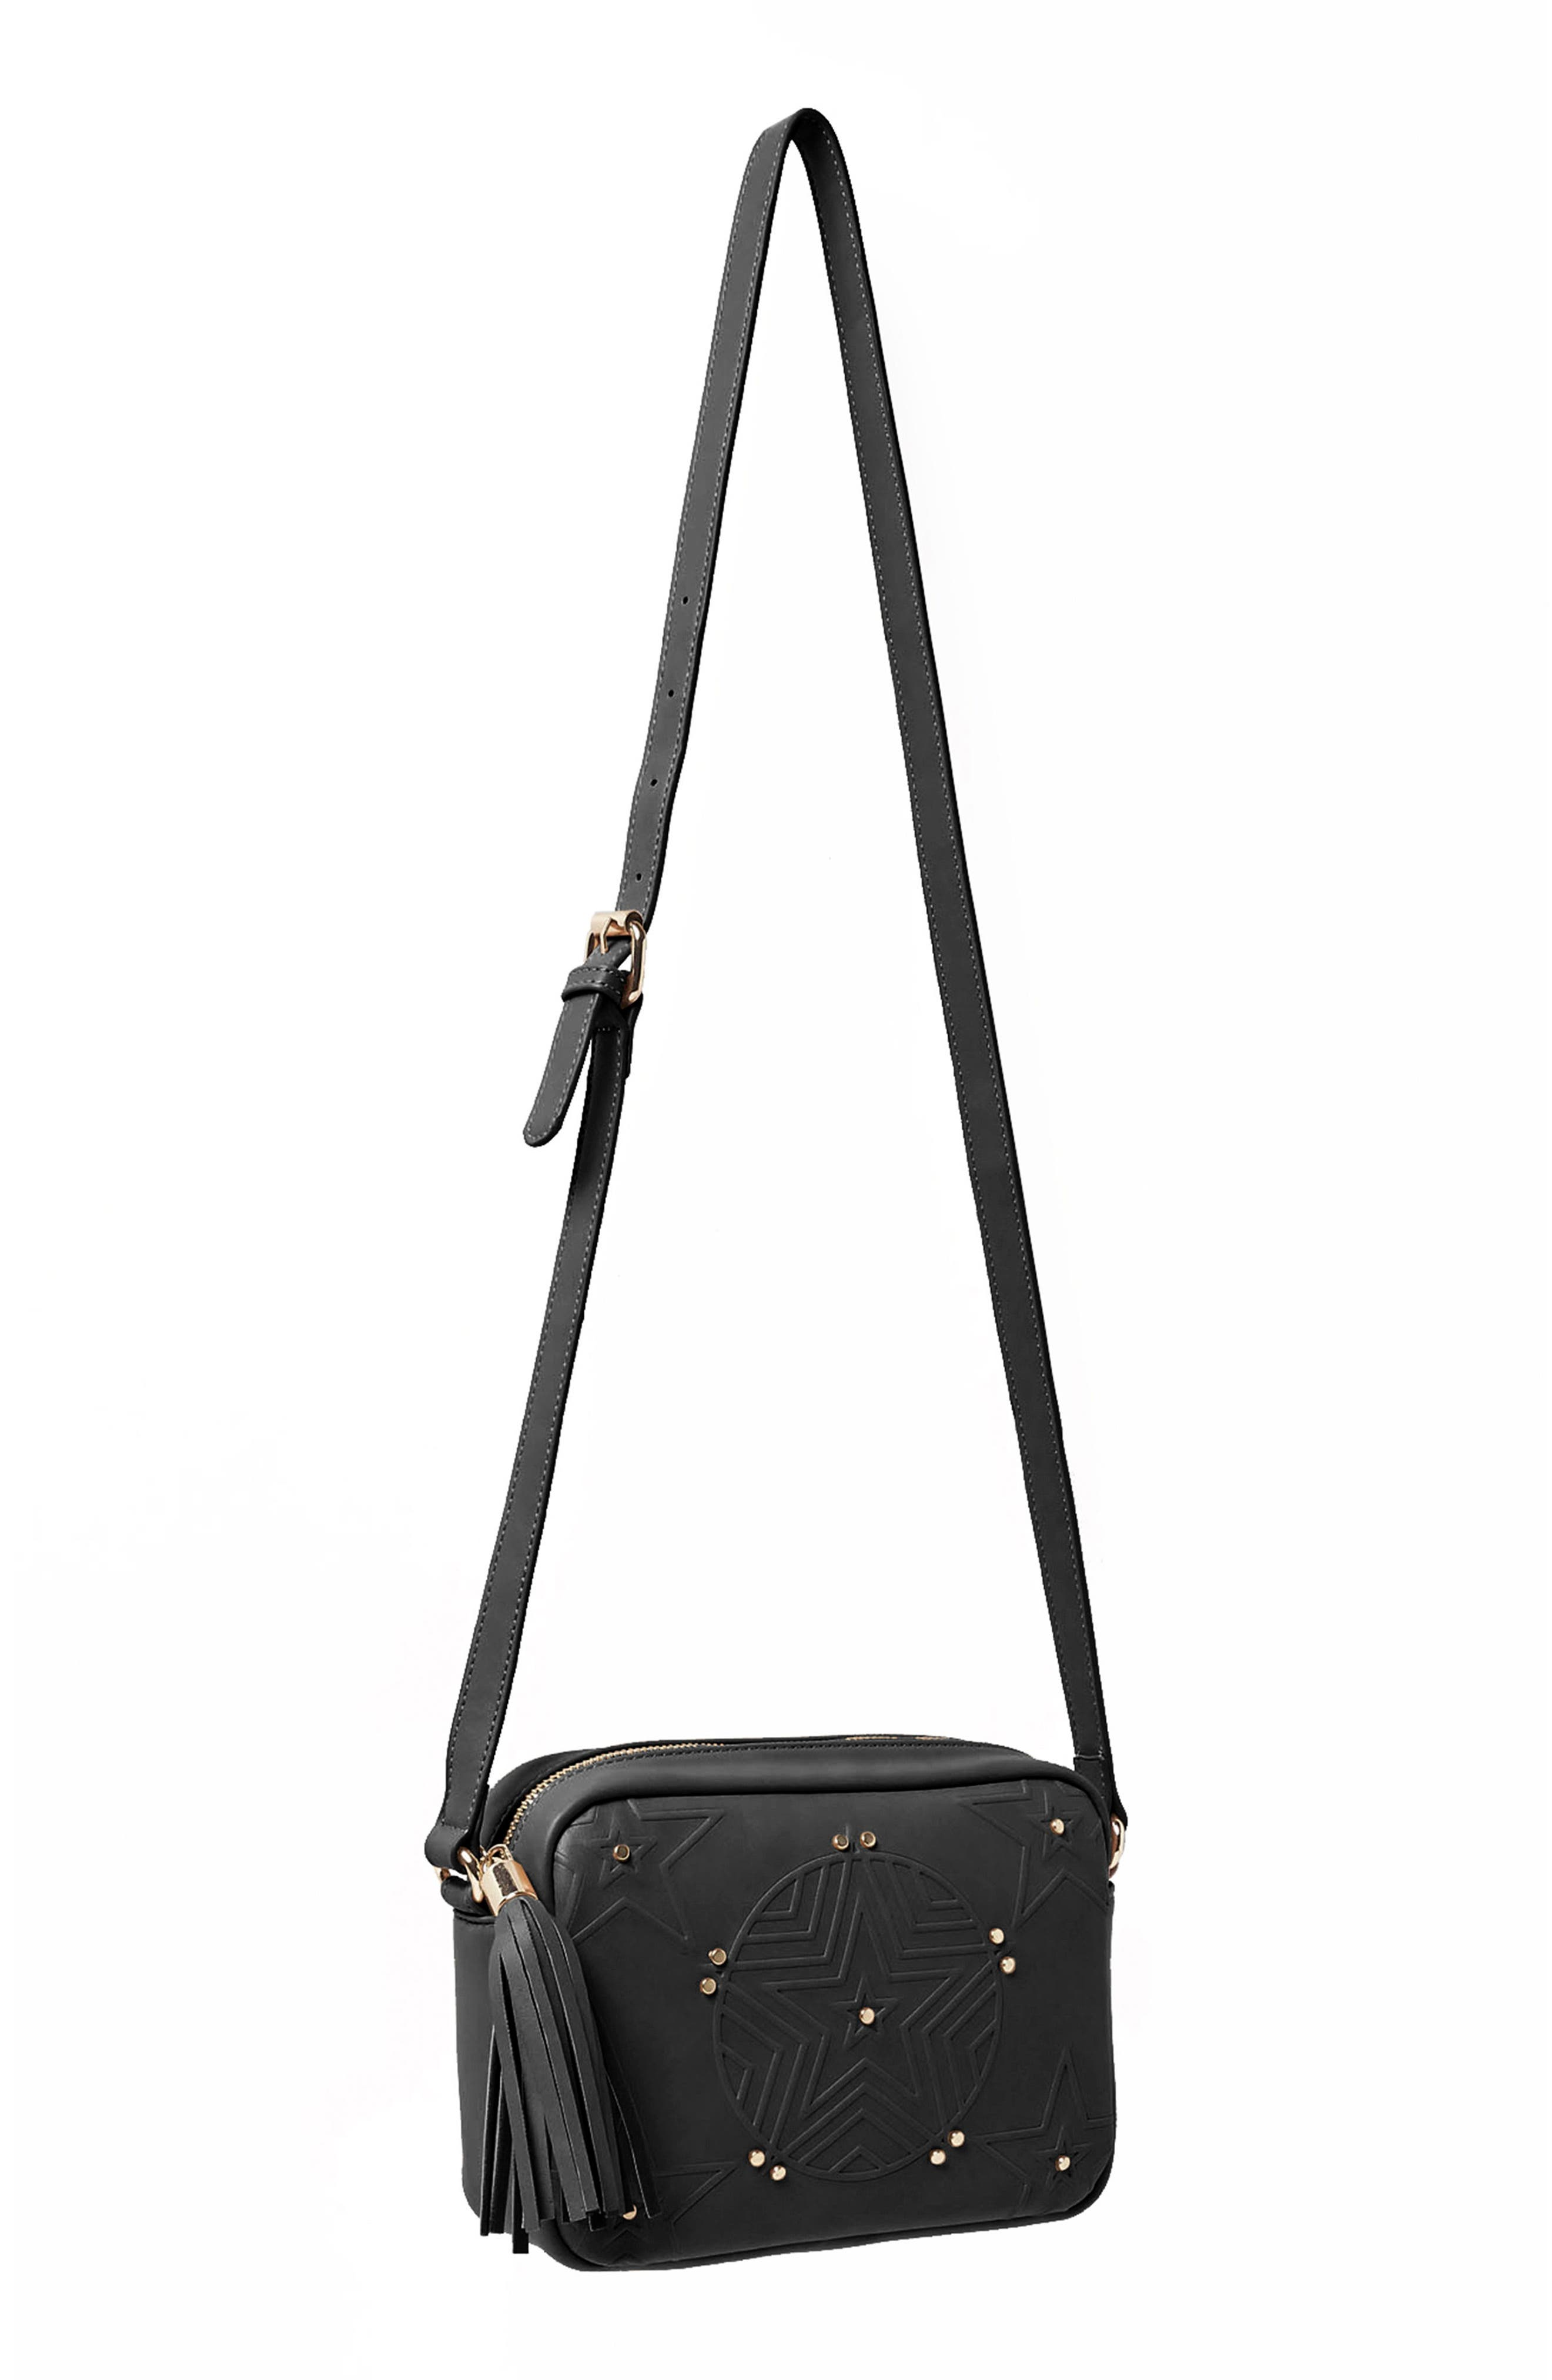 Stargazer Vegan Leather Crossbody Bag,                             Alternate thumbnail 3, color,                             Black